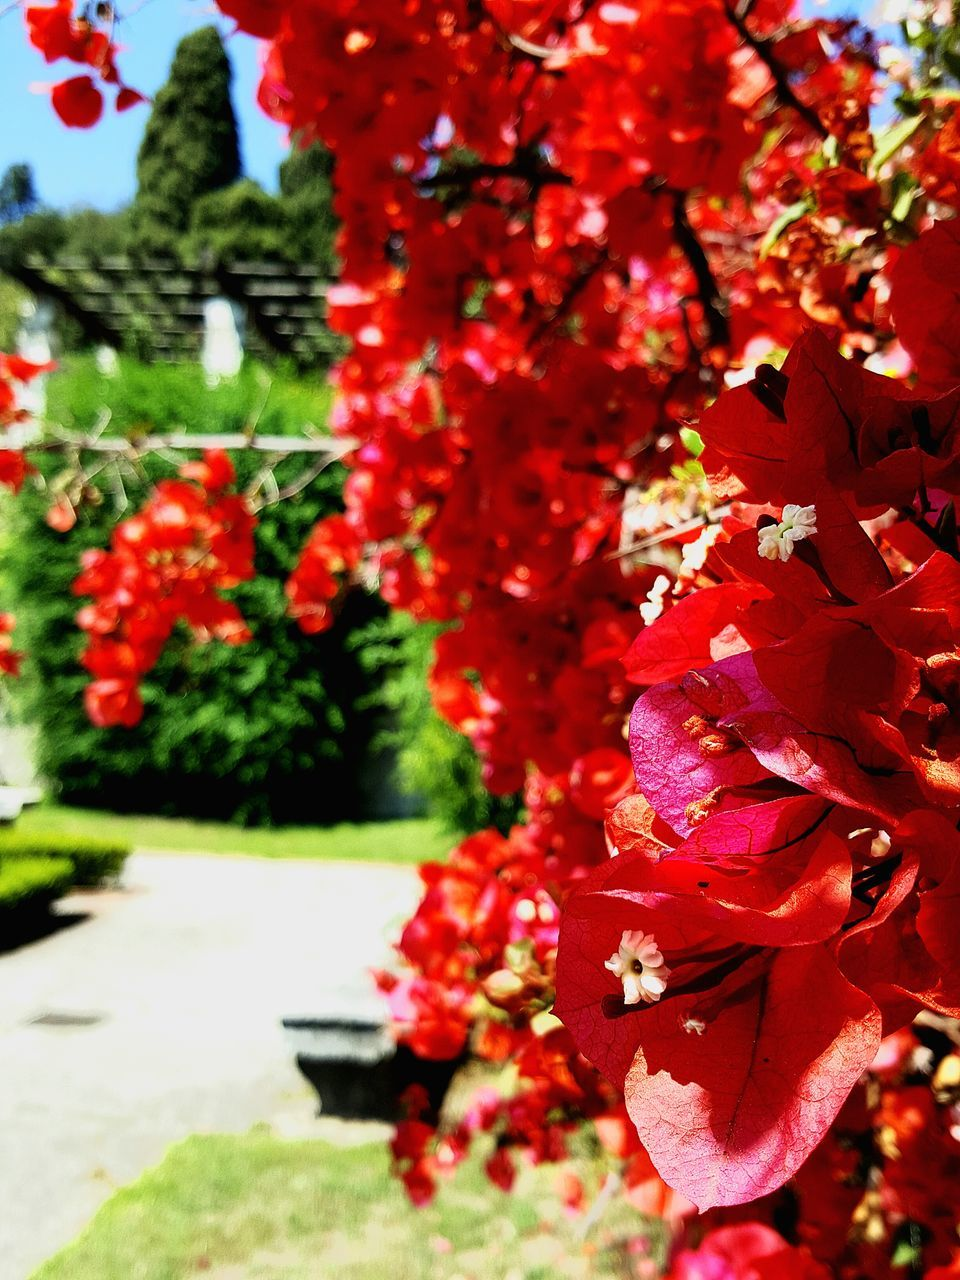 growth, tree, nature, beauty in nature, flower, red, no people, fragility, leaf, day, plant, close-up, outdoors, freshness